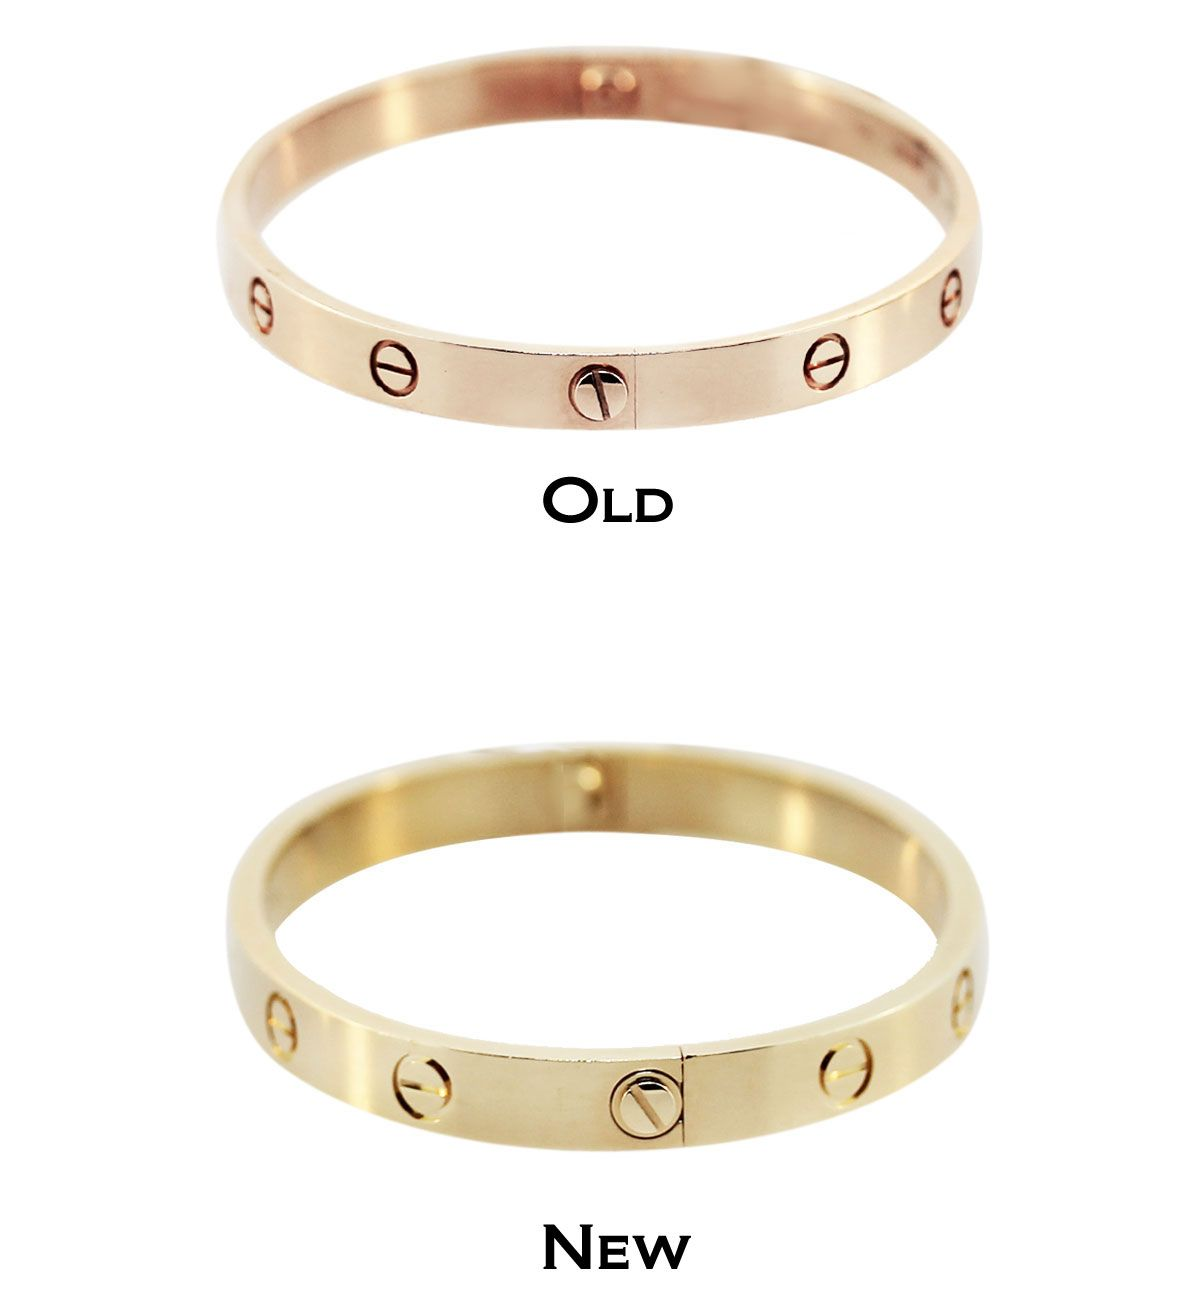 4c19d9b36e161 The Difference Between the New Cartier Love Bangle & the Older ...